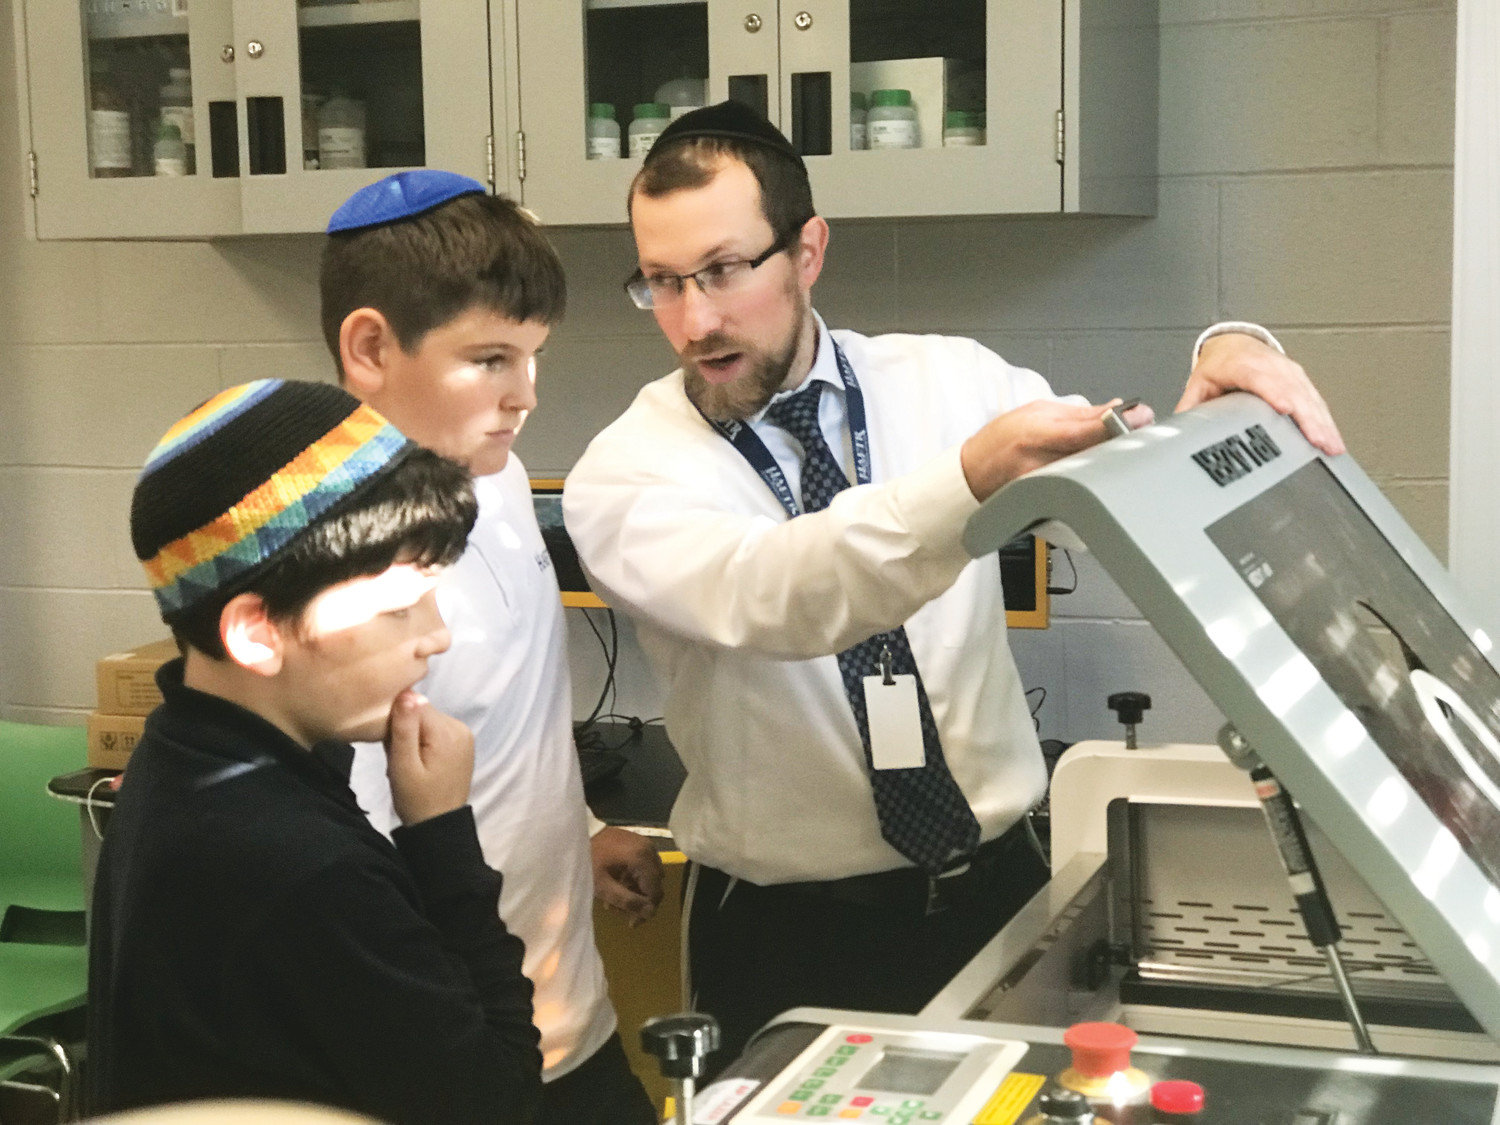 Rabbi Baruch Noy, the Hebrew Academy of the Five Towns and Rockaway's STEM curriculum coordinator, showed Peter Drukker, center, and Noah Popack how to use the state-of-the-art laser cutter in the middle school's laboratory.